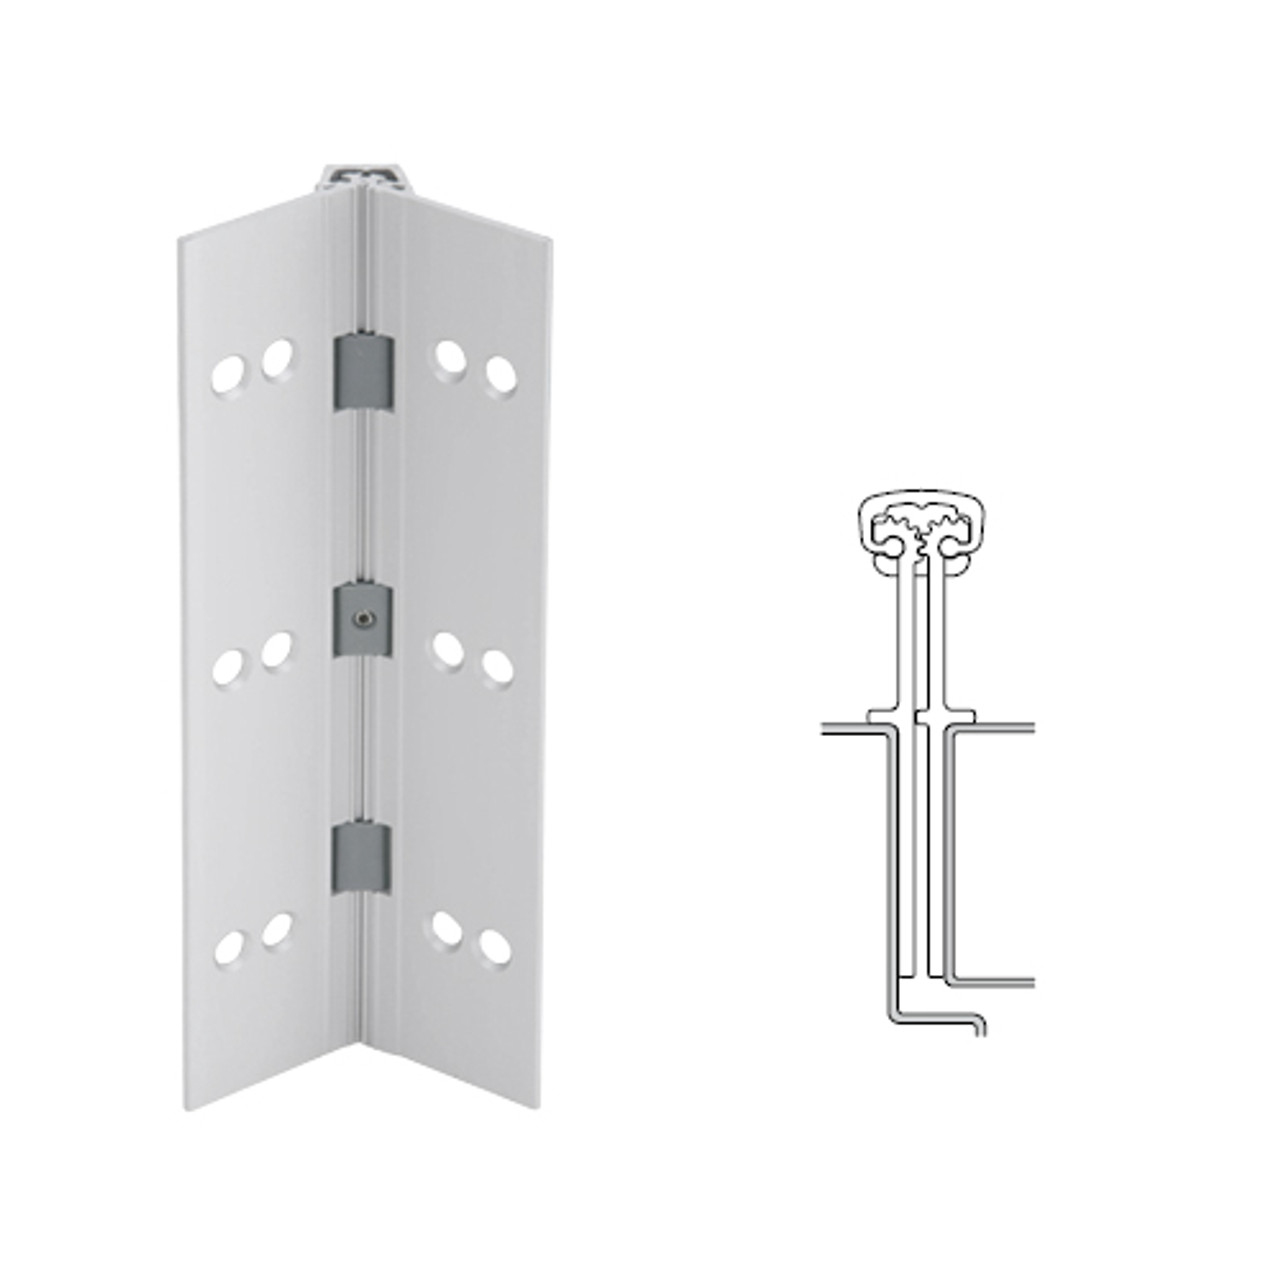 040XY-US28-95-HT IVES Full Mortise Continuous Geared Hinges with Hospital Tip in Satin Aluminum